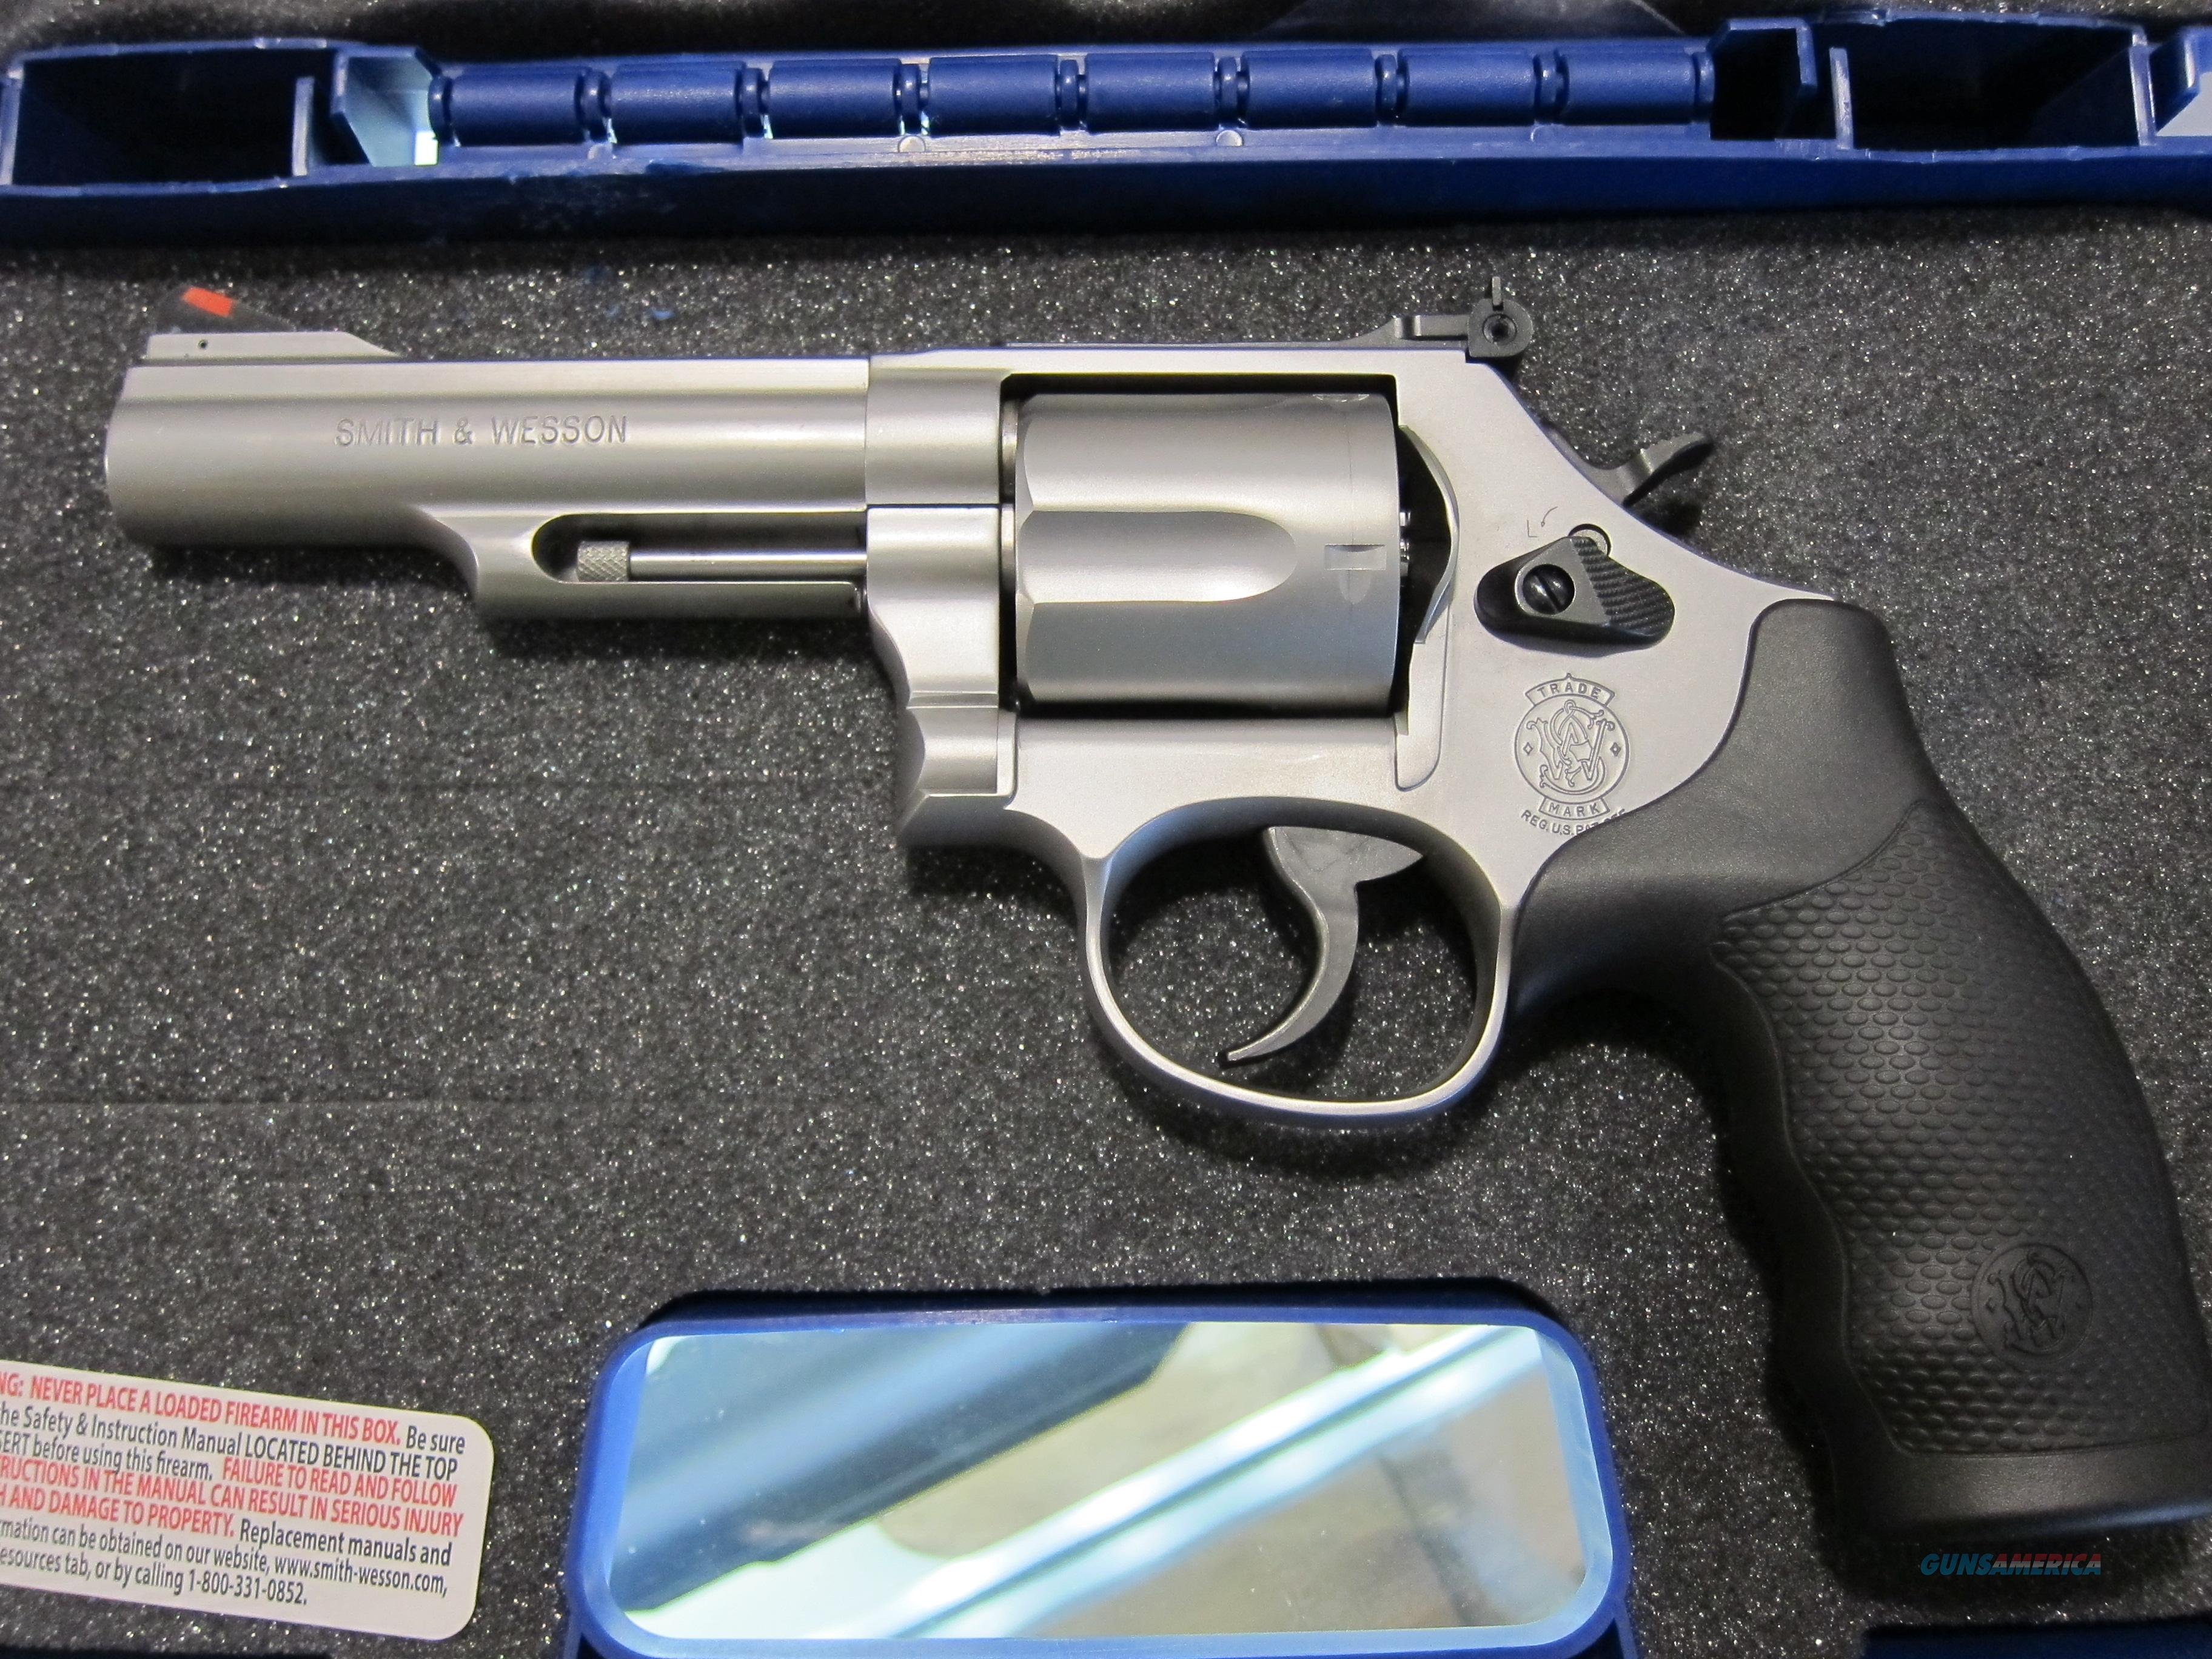 SMITH & WESSON Model 69 (NIB), .44 Magnum/.44 Special, 4.25 inch Barrel, Stainless, 5 Shot Cylinder.  Guns > Pistols > Smith & Wesson Revolvers > Full Frame Revolver